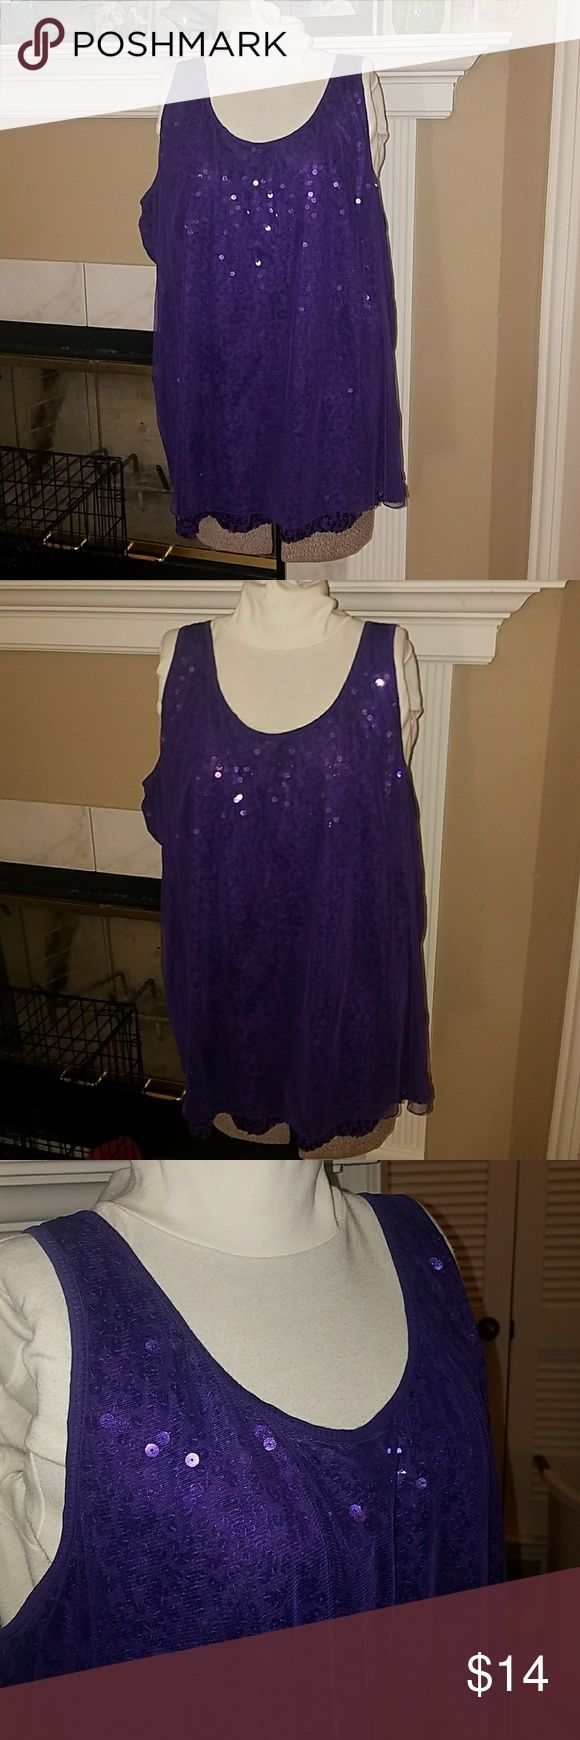 Lane Bryant purple sequin tank top Lane Bryant purple sequin tank top. There is a mesh layer on top of sequin front. Cotton back. Size 22/24. Lightly loved. Comes from smoke free, pet friendly home. Lane Bryant Tops Tank Tops